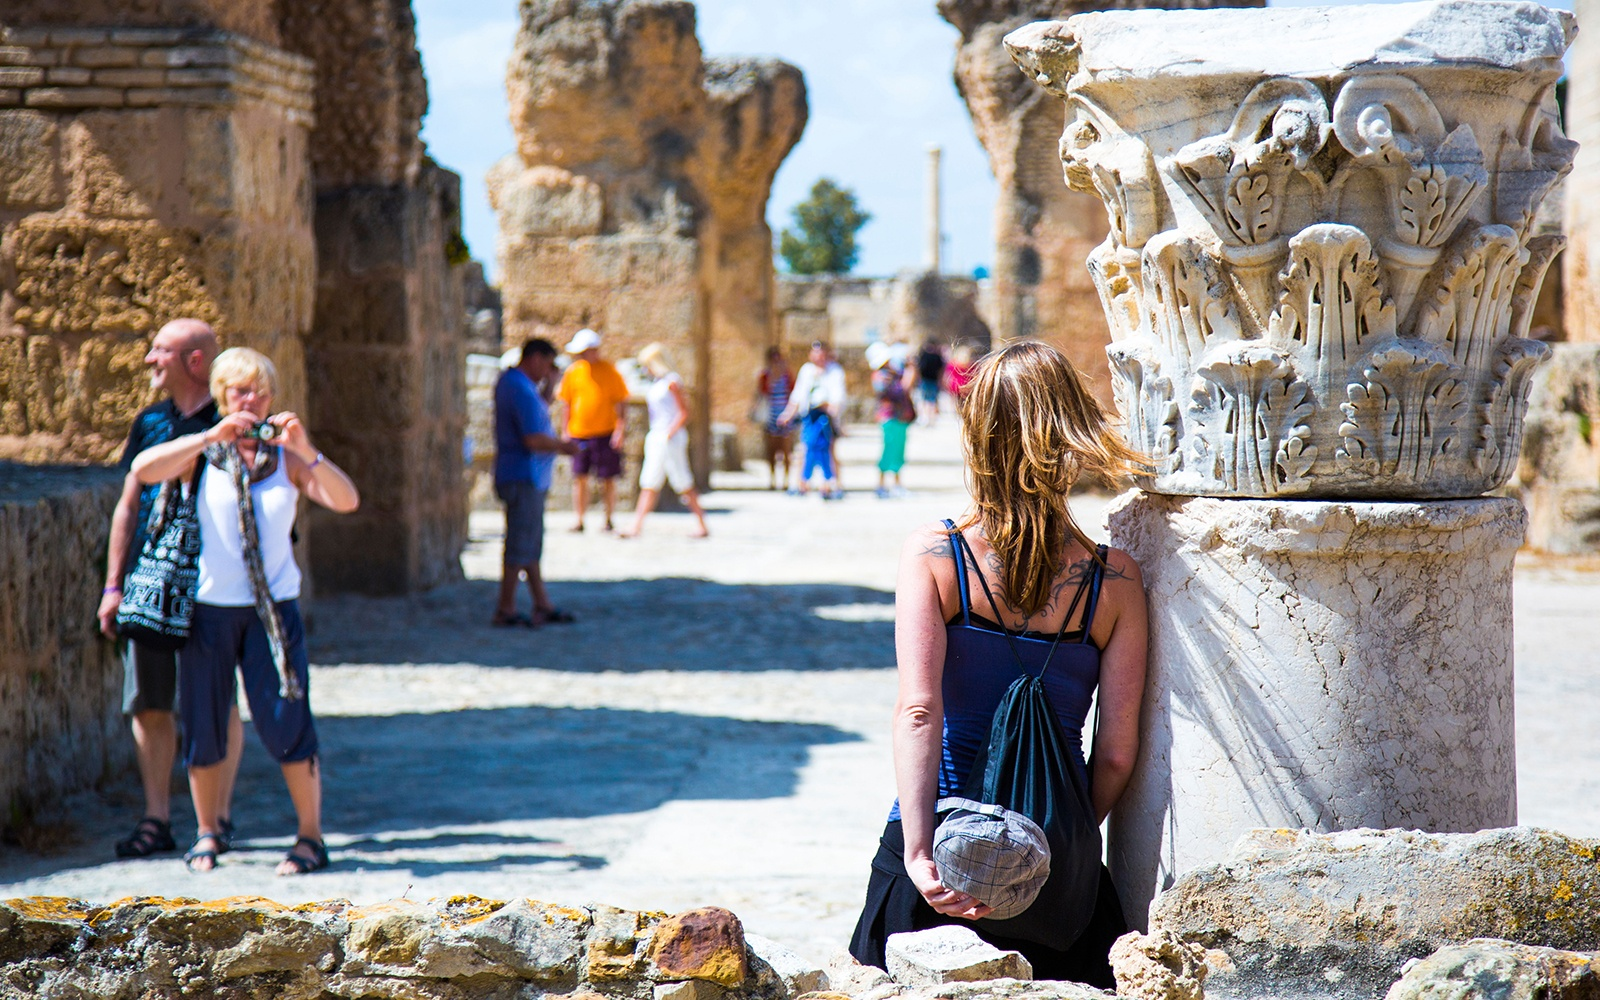 tourism in tunisia Tunisia is a country located at the tip of north africa and separated from europe by the mediterranean sea, the italian coast are separated by less than 200 kilometers from the tunisian coast.